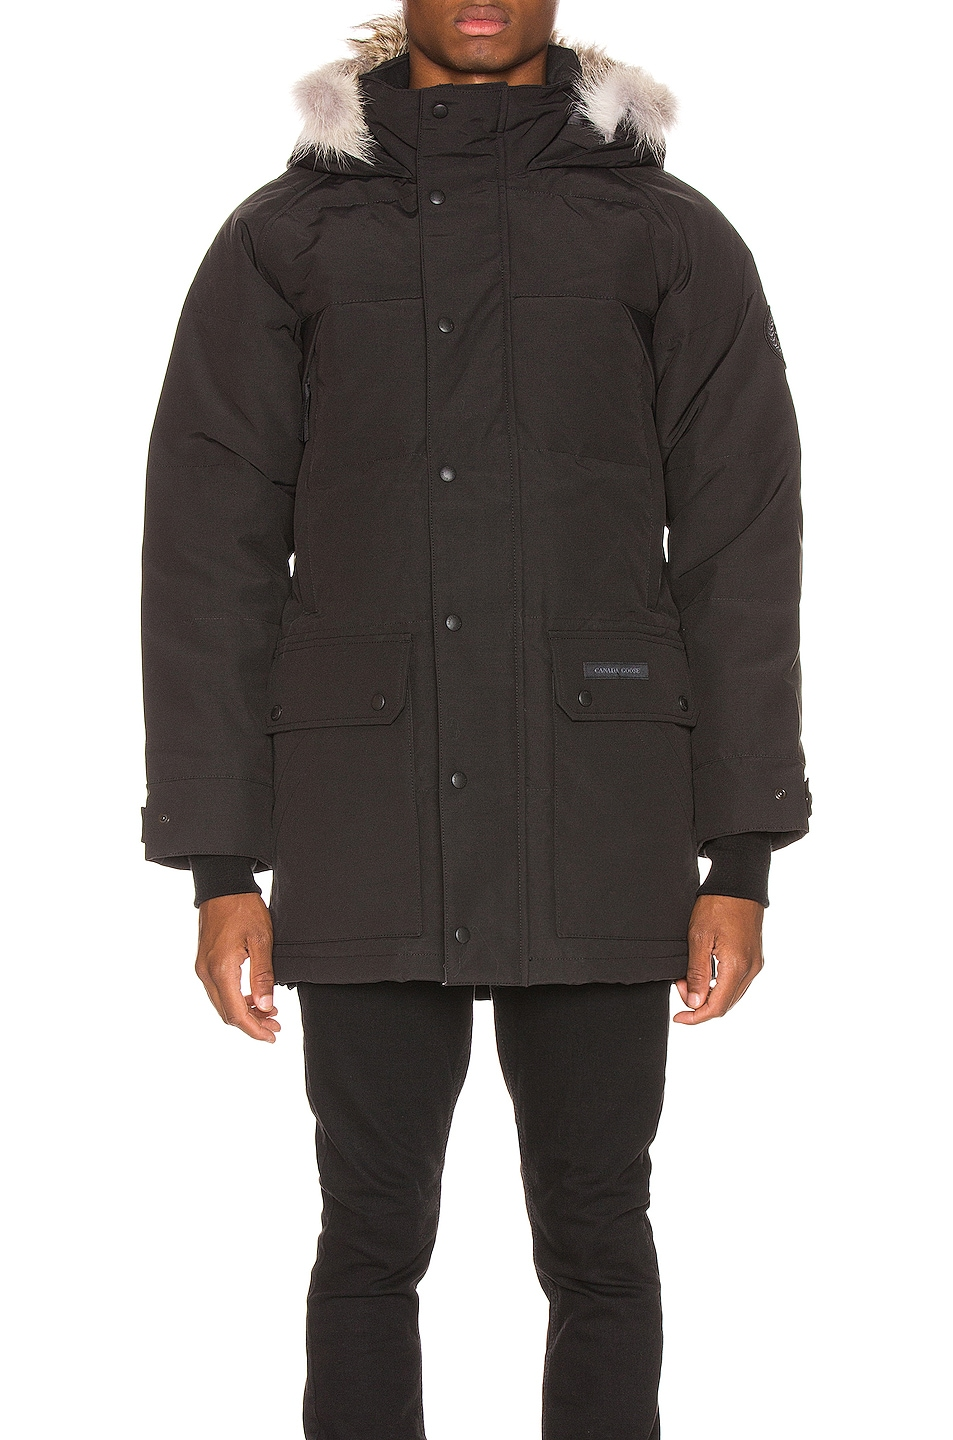 Image 2 of Canada Goose Maitland Parka in Black